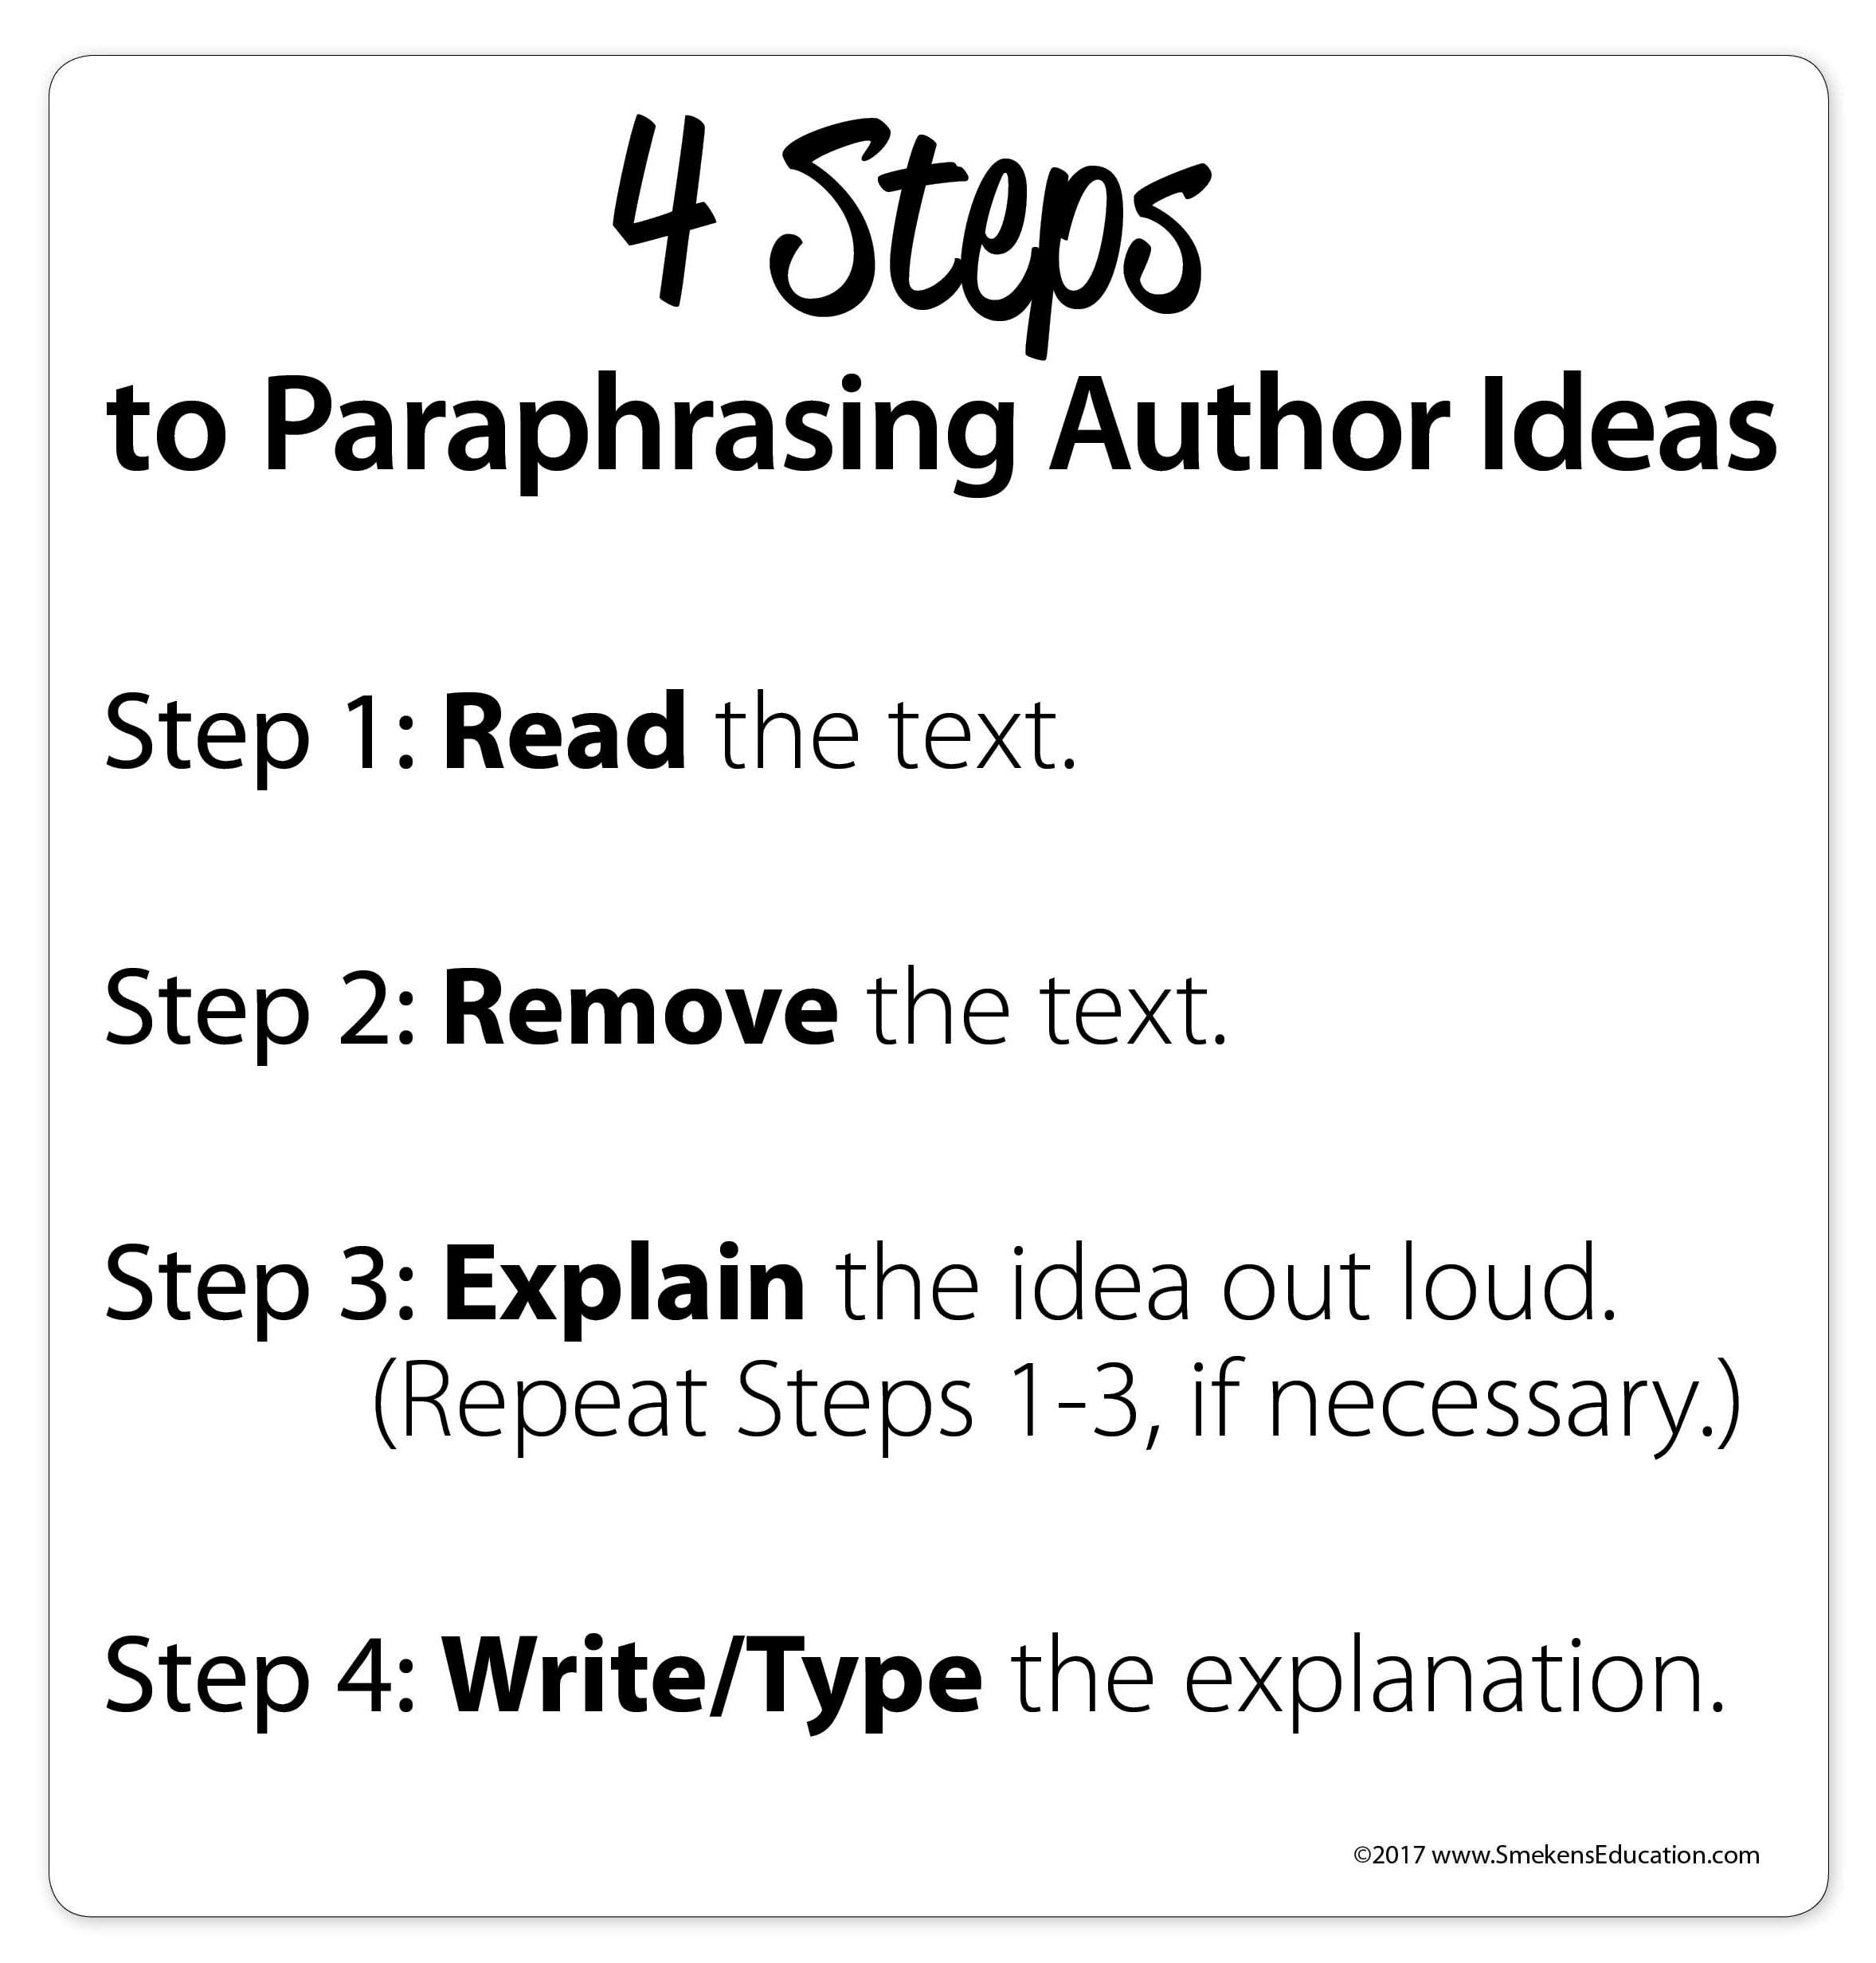 4 Step To Paraphrasing Author Idea Paraphrase Essay How Put In A Sentence